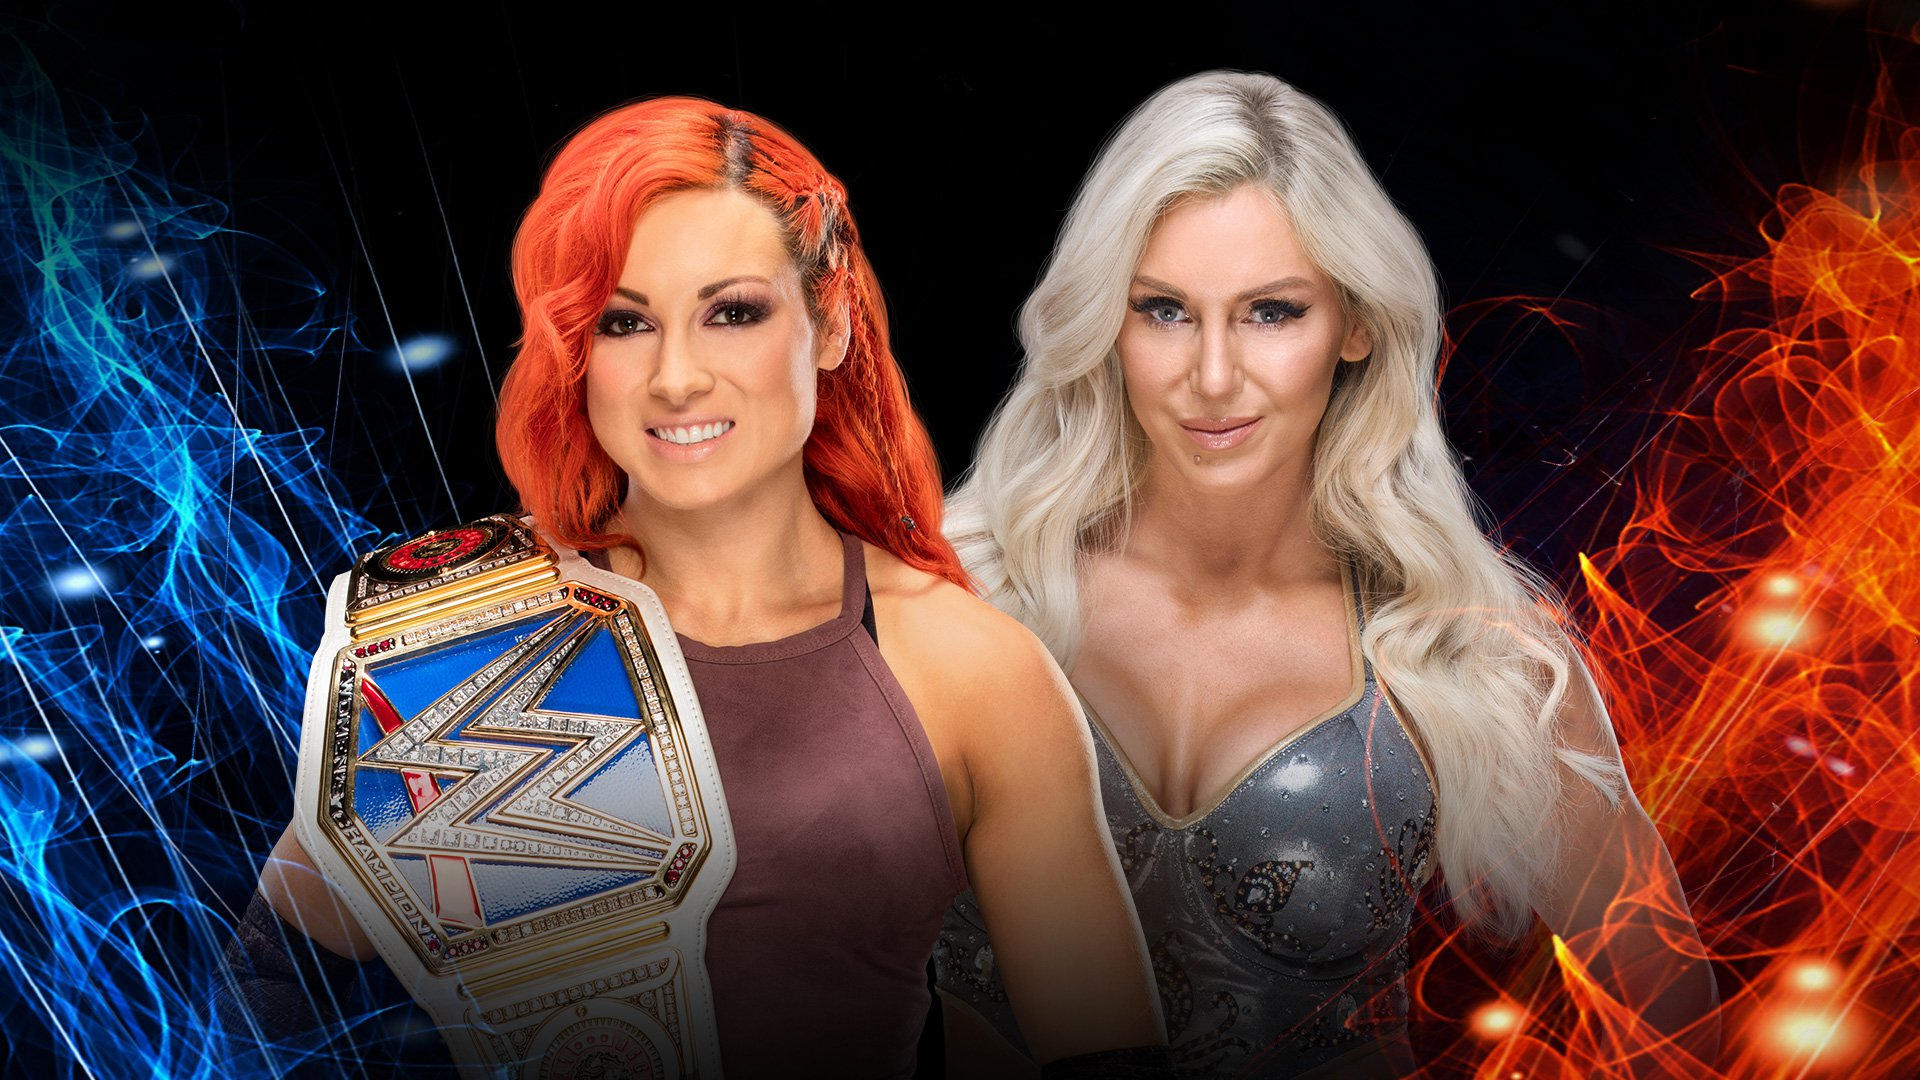 Confirmed and Potential Matches for WWE Super Show-Down 2018 20180917_SuperShowDown_Match_BeckyCharlotte--3848f2001487a59baf03ba5a66dd2014